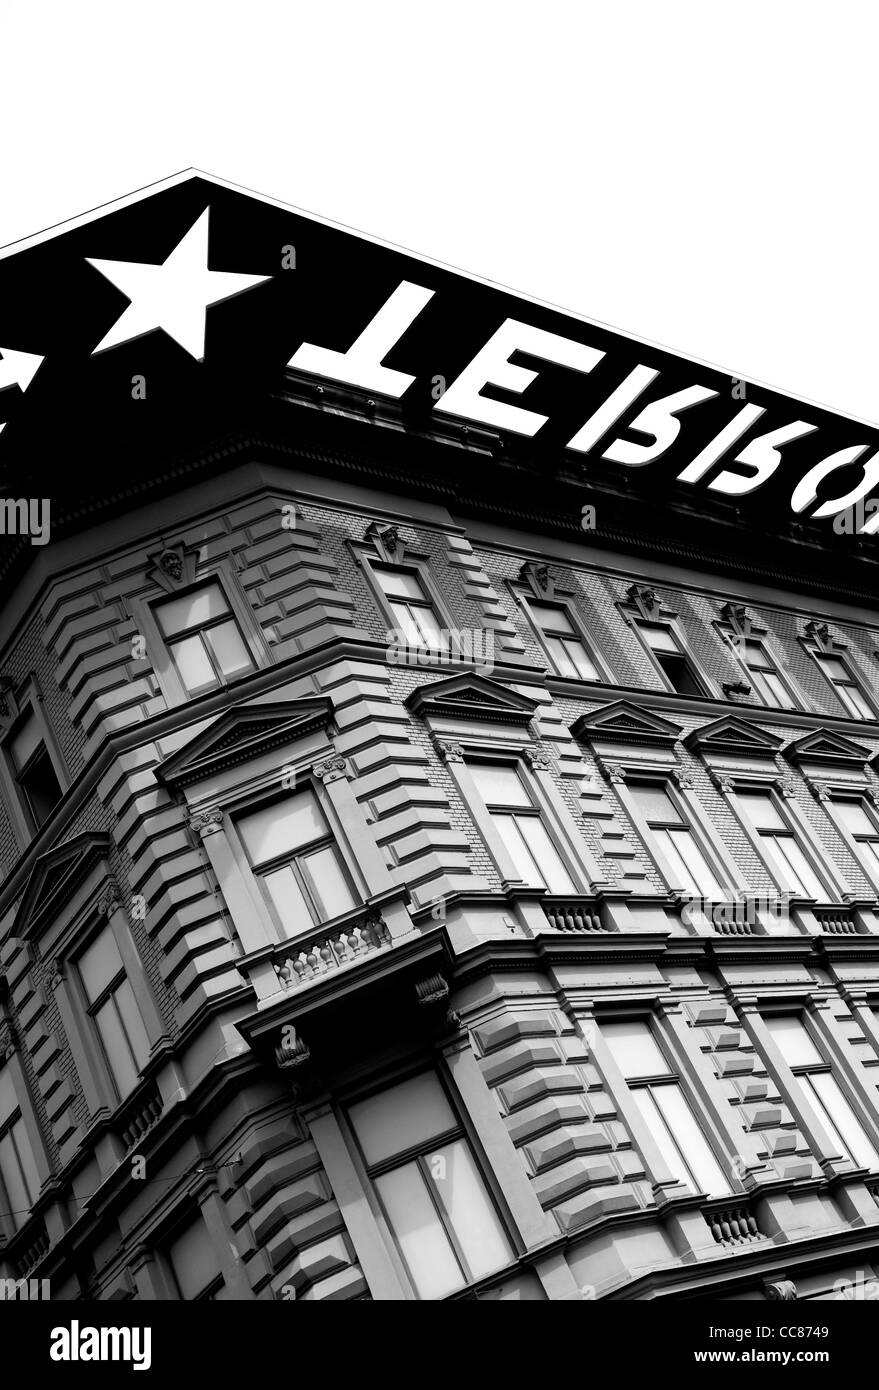 The House of Terror, 60 Andrassy St, Budapest, Hungary - former HQ of Hungary's feared secret police and now a museum. Stock Photo